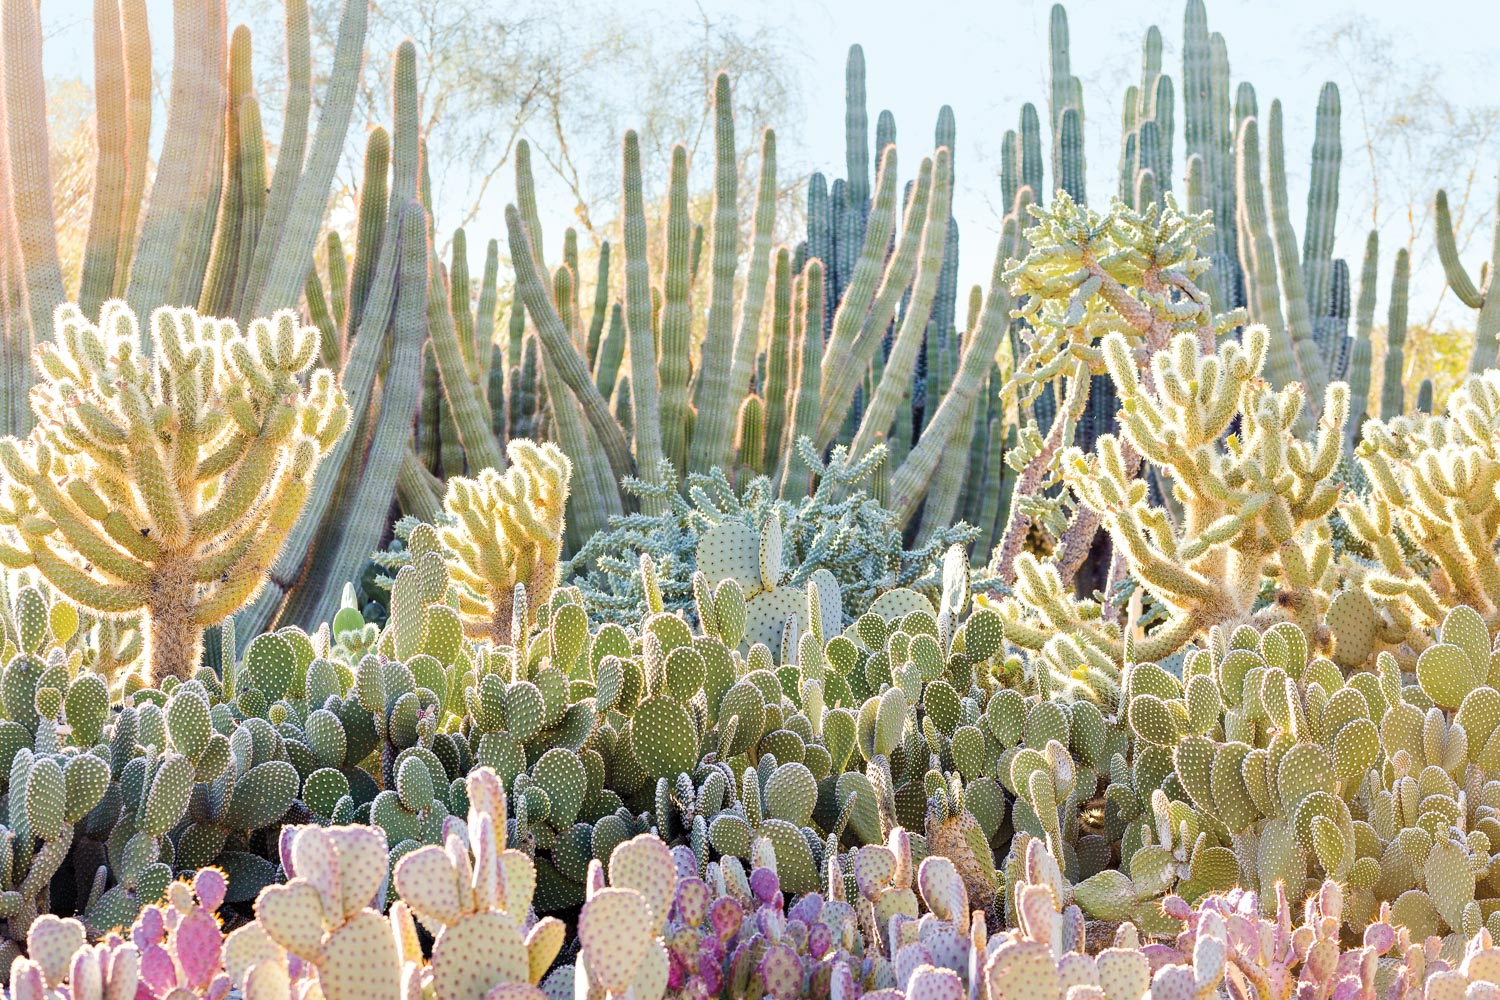 Assortment of large and small cacti outdoors